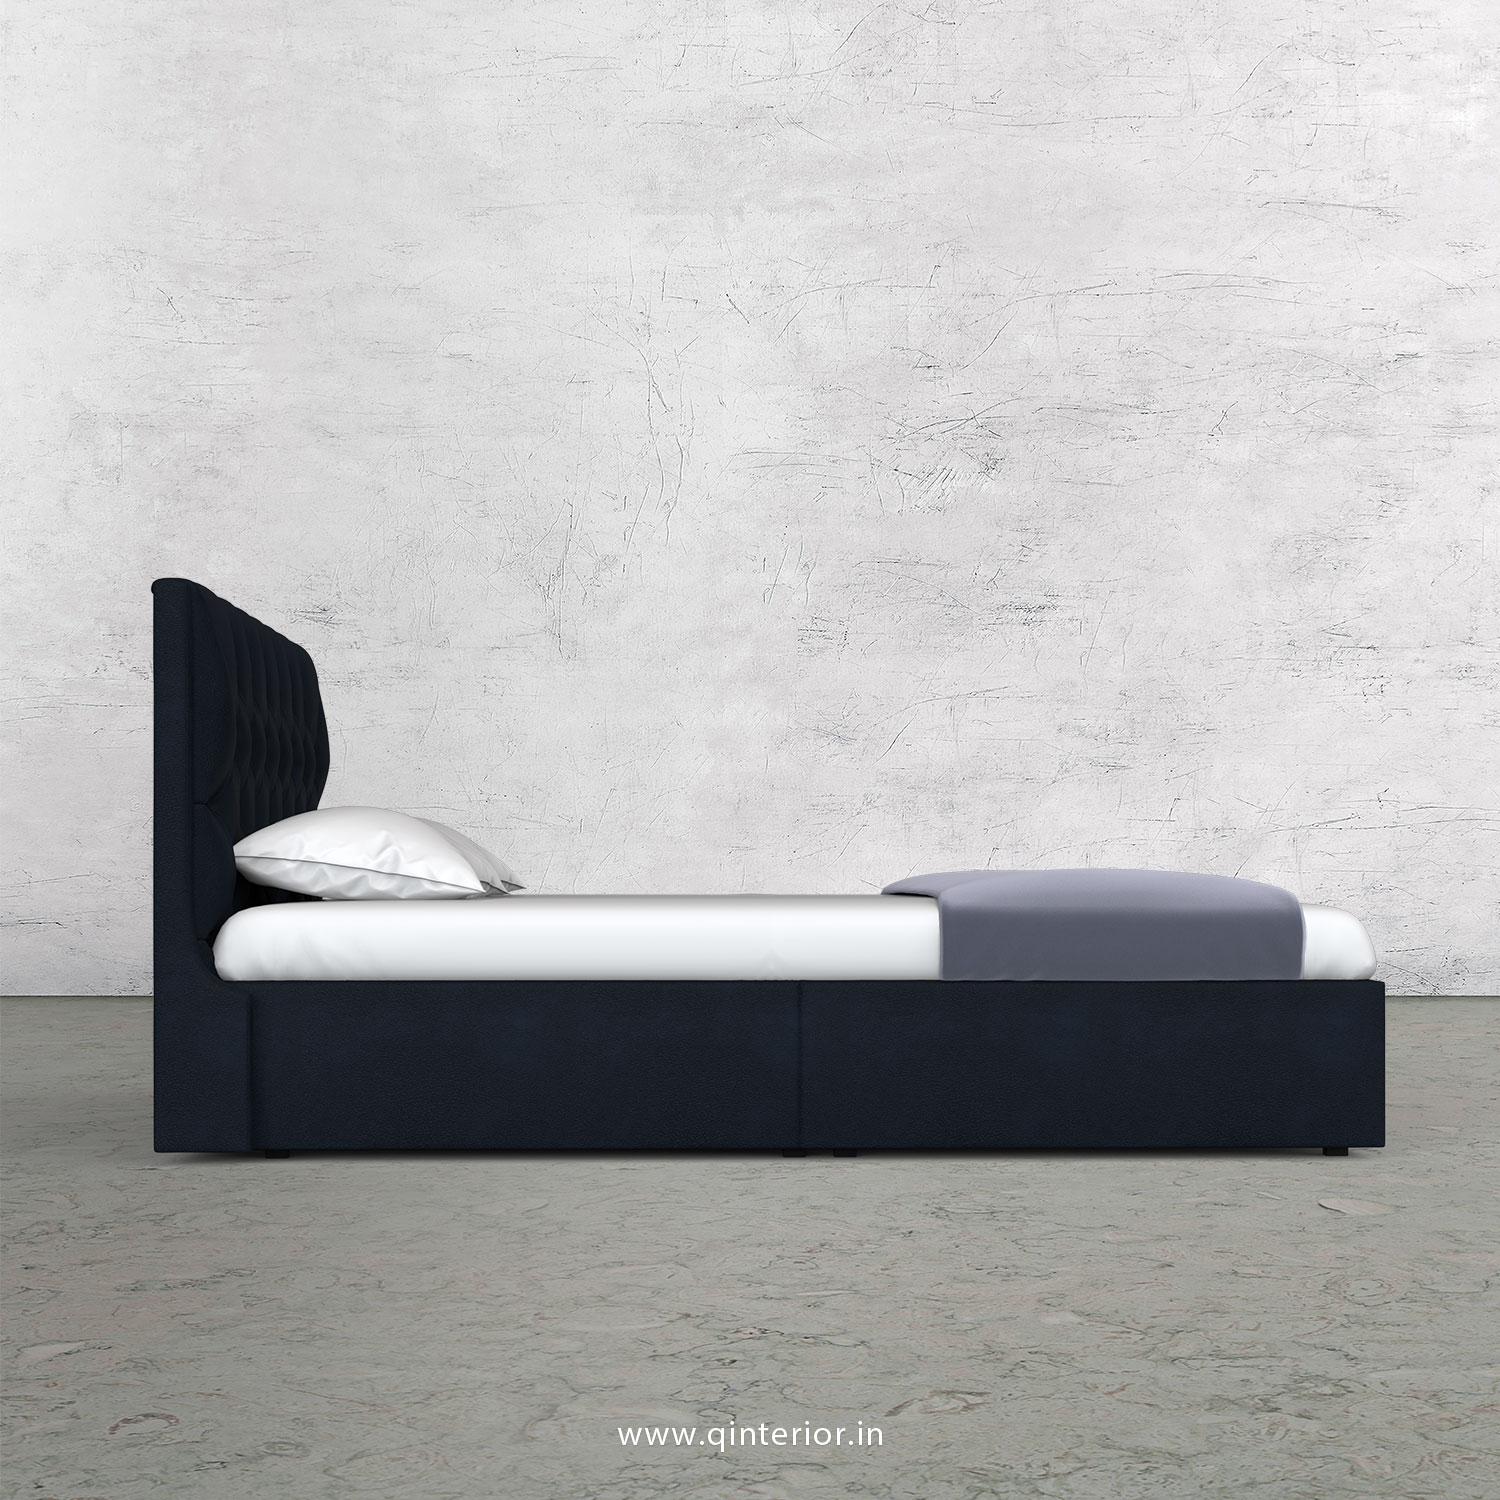 Scorpius Queen Storage Bed in Fab Leather Fabric - QBD001 FL05